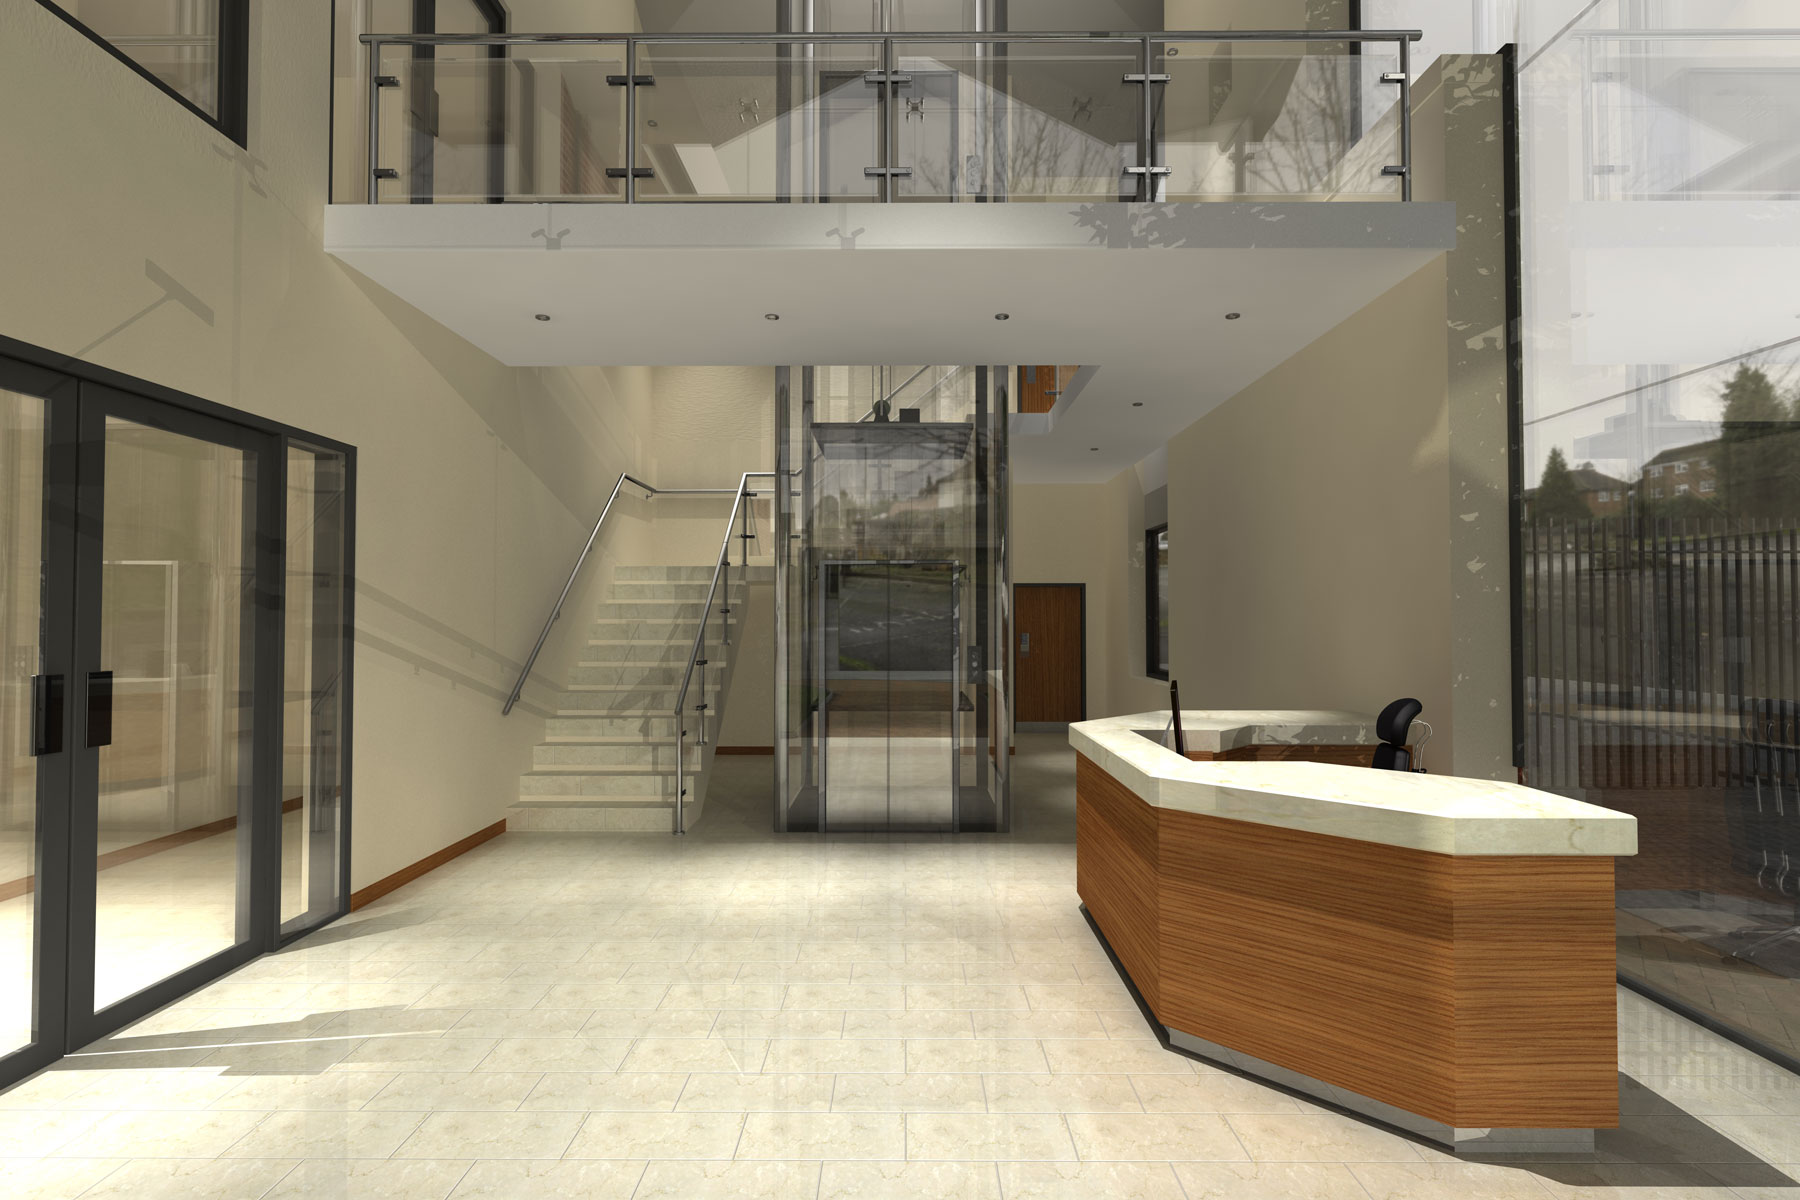 Chertsey Offices entrance lobby by KHA Architects